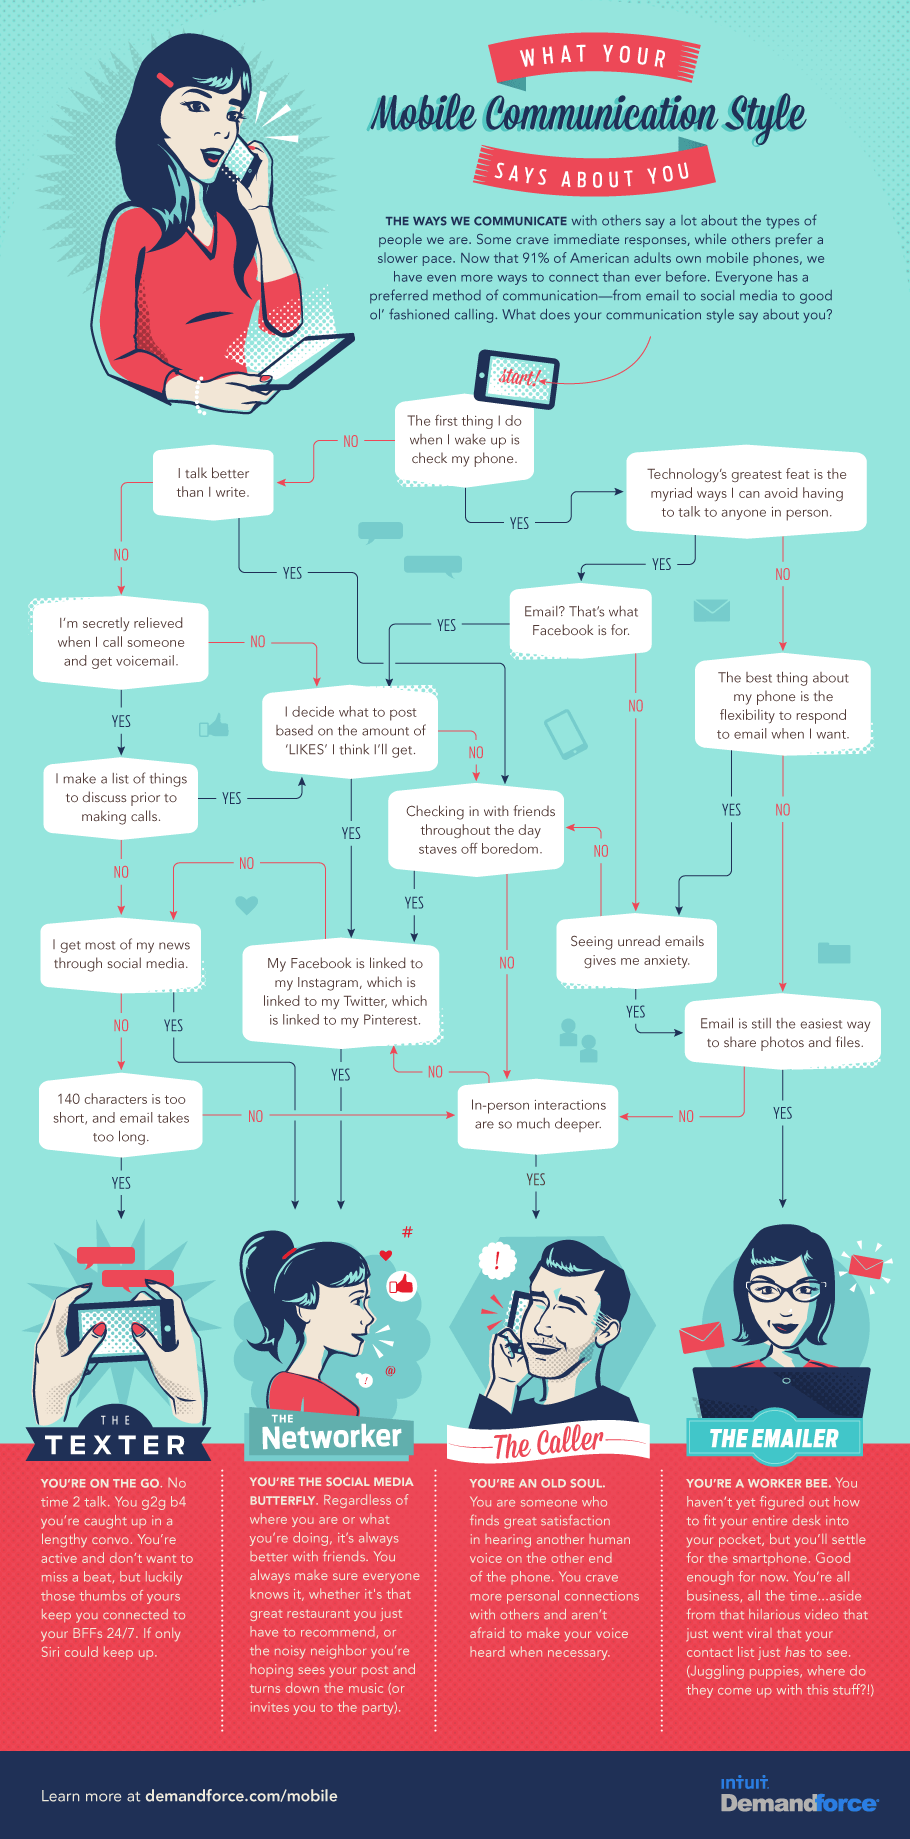 What your mobile communication style says about you